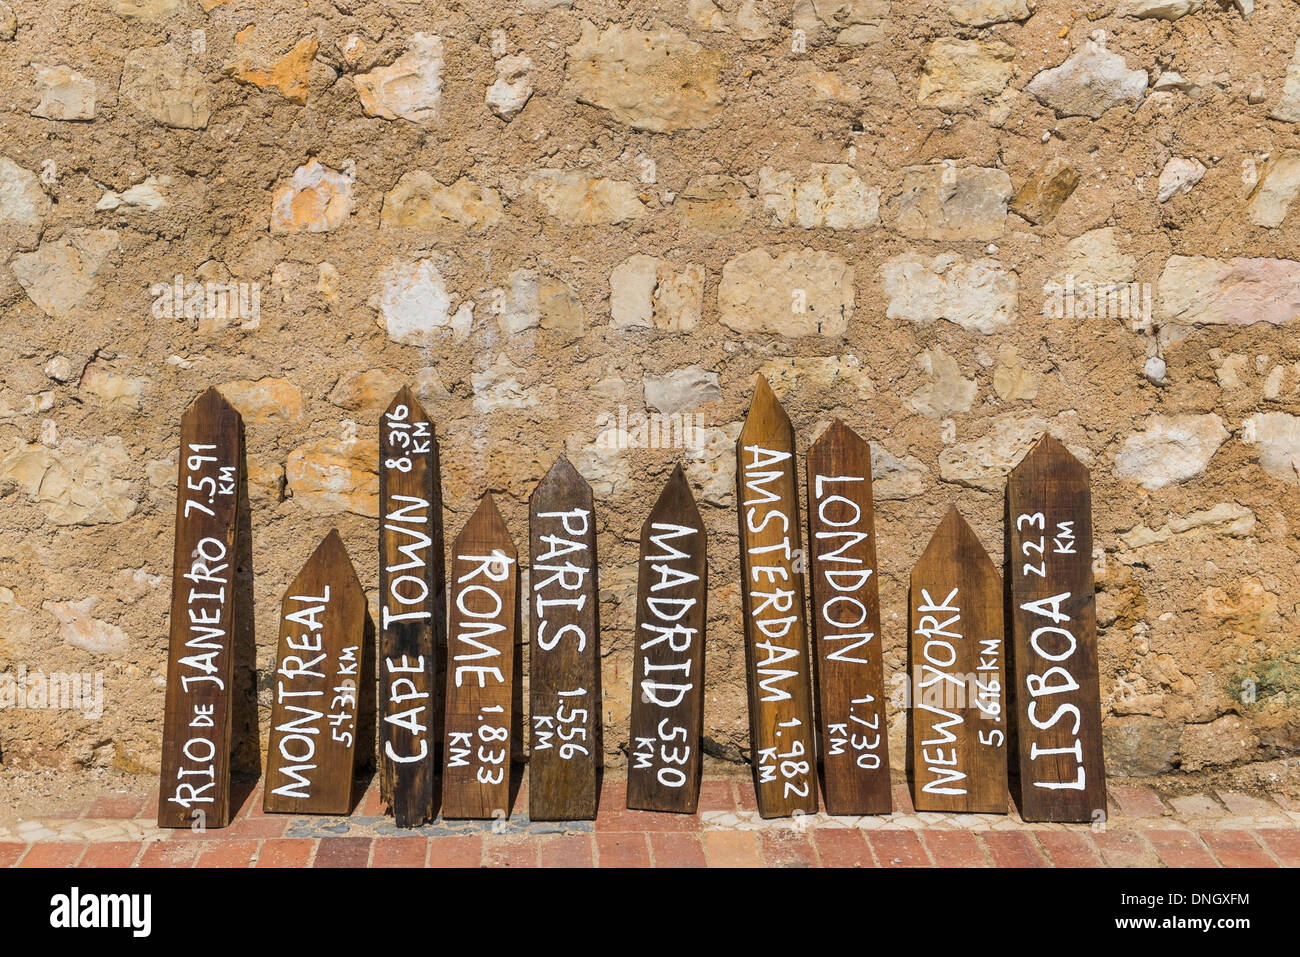 freshly painted distance indicators leaning on a natural stone wall, faro, algarve, portugal - Stock Image